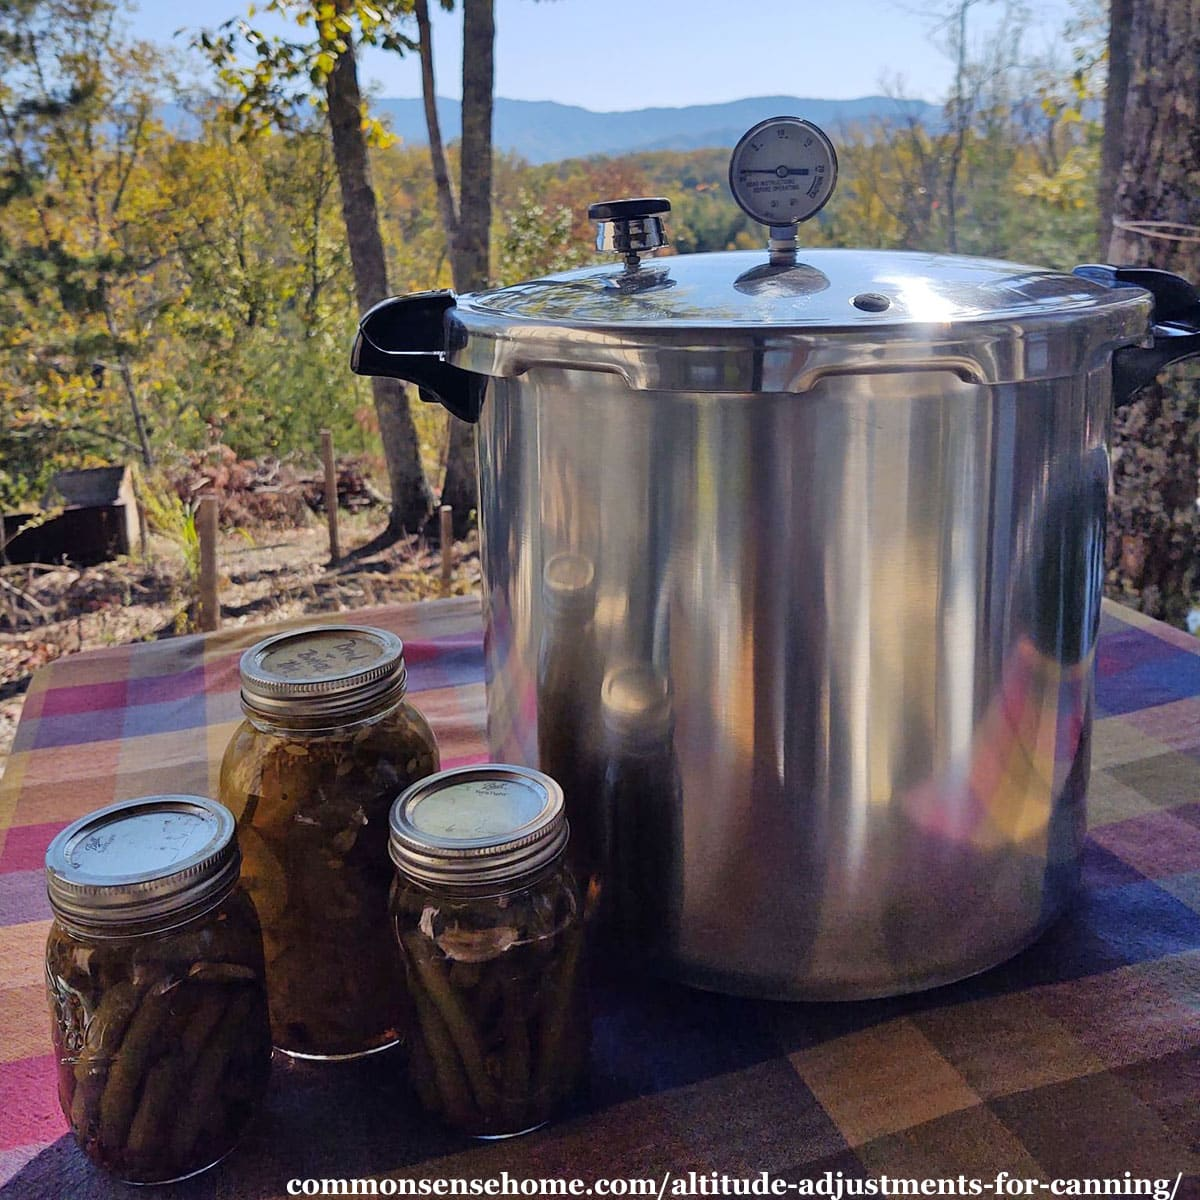 pressure canner with home canned goods against mountain backdrop